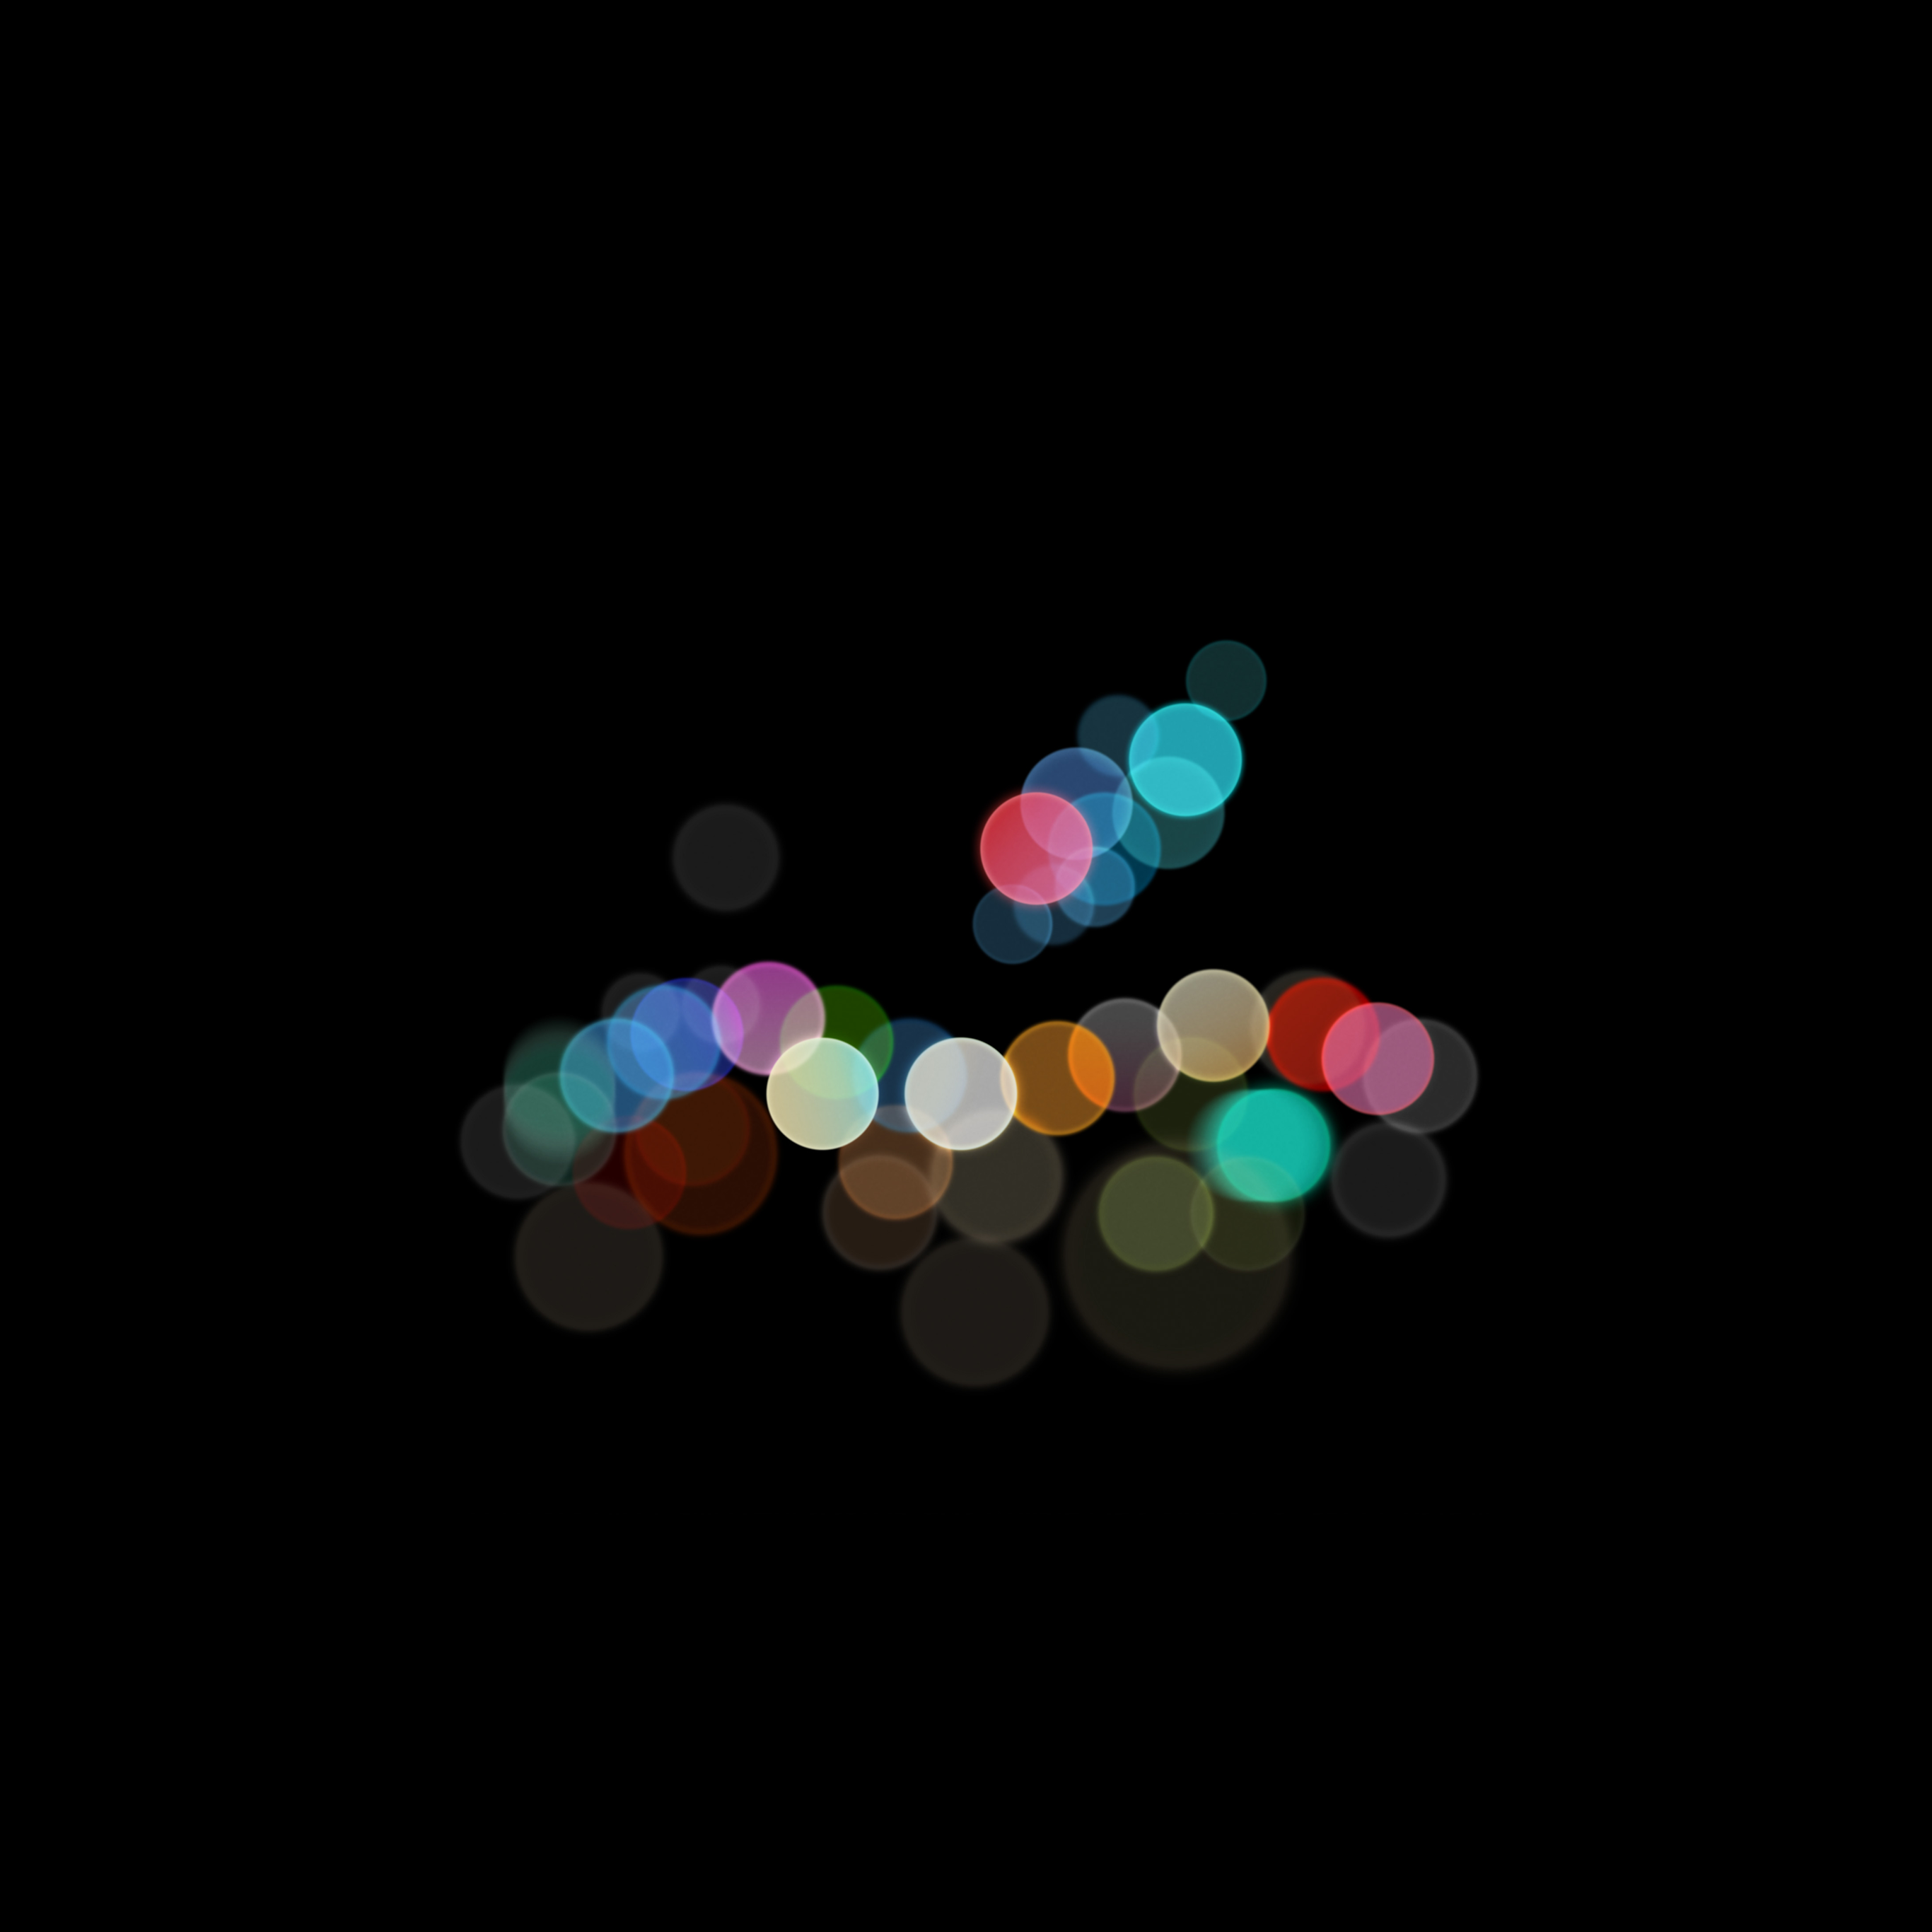 Apple September 7 event wallpaper ar7 ipad